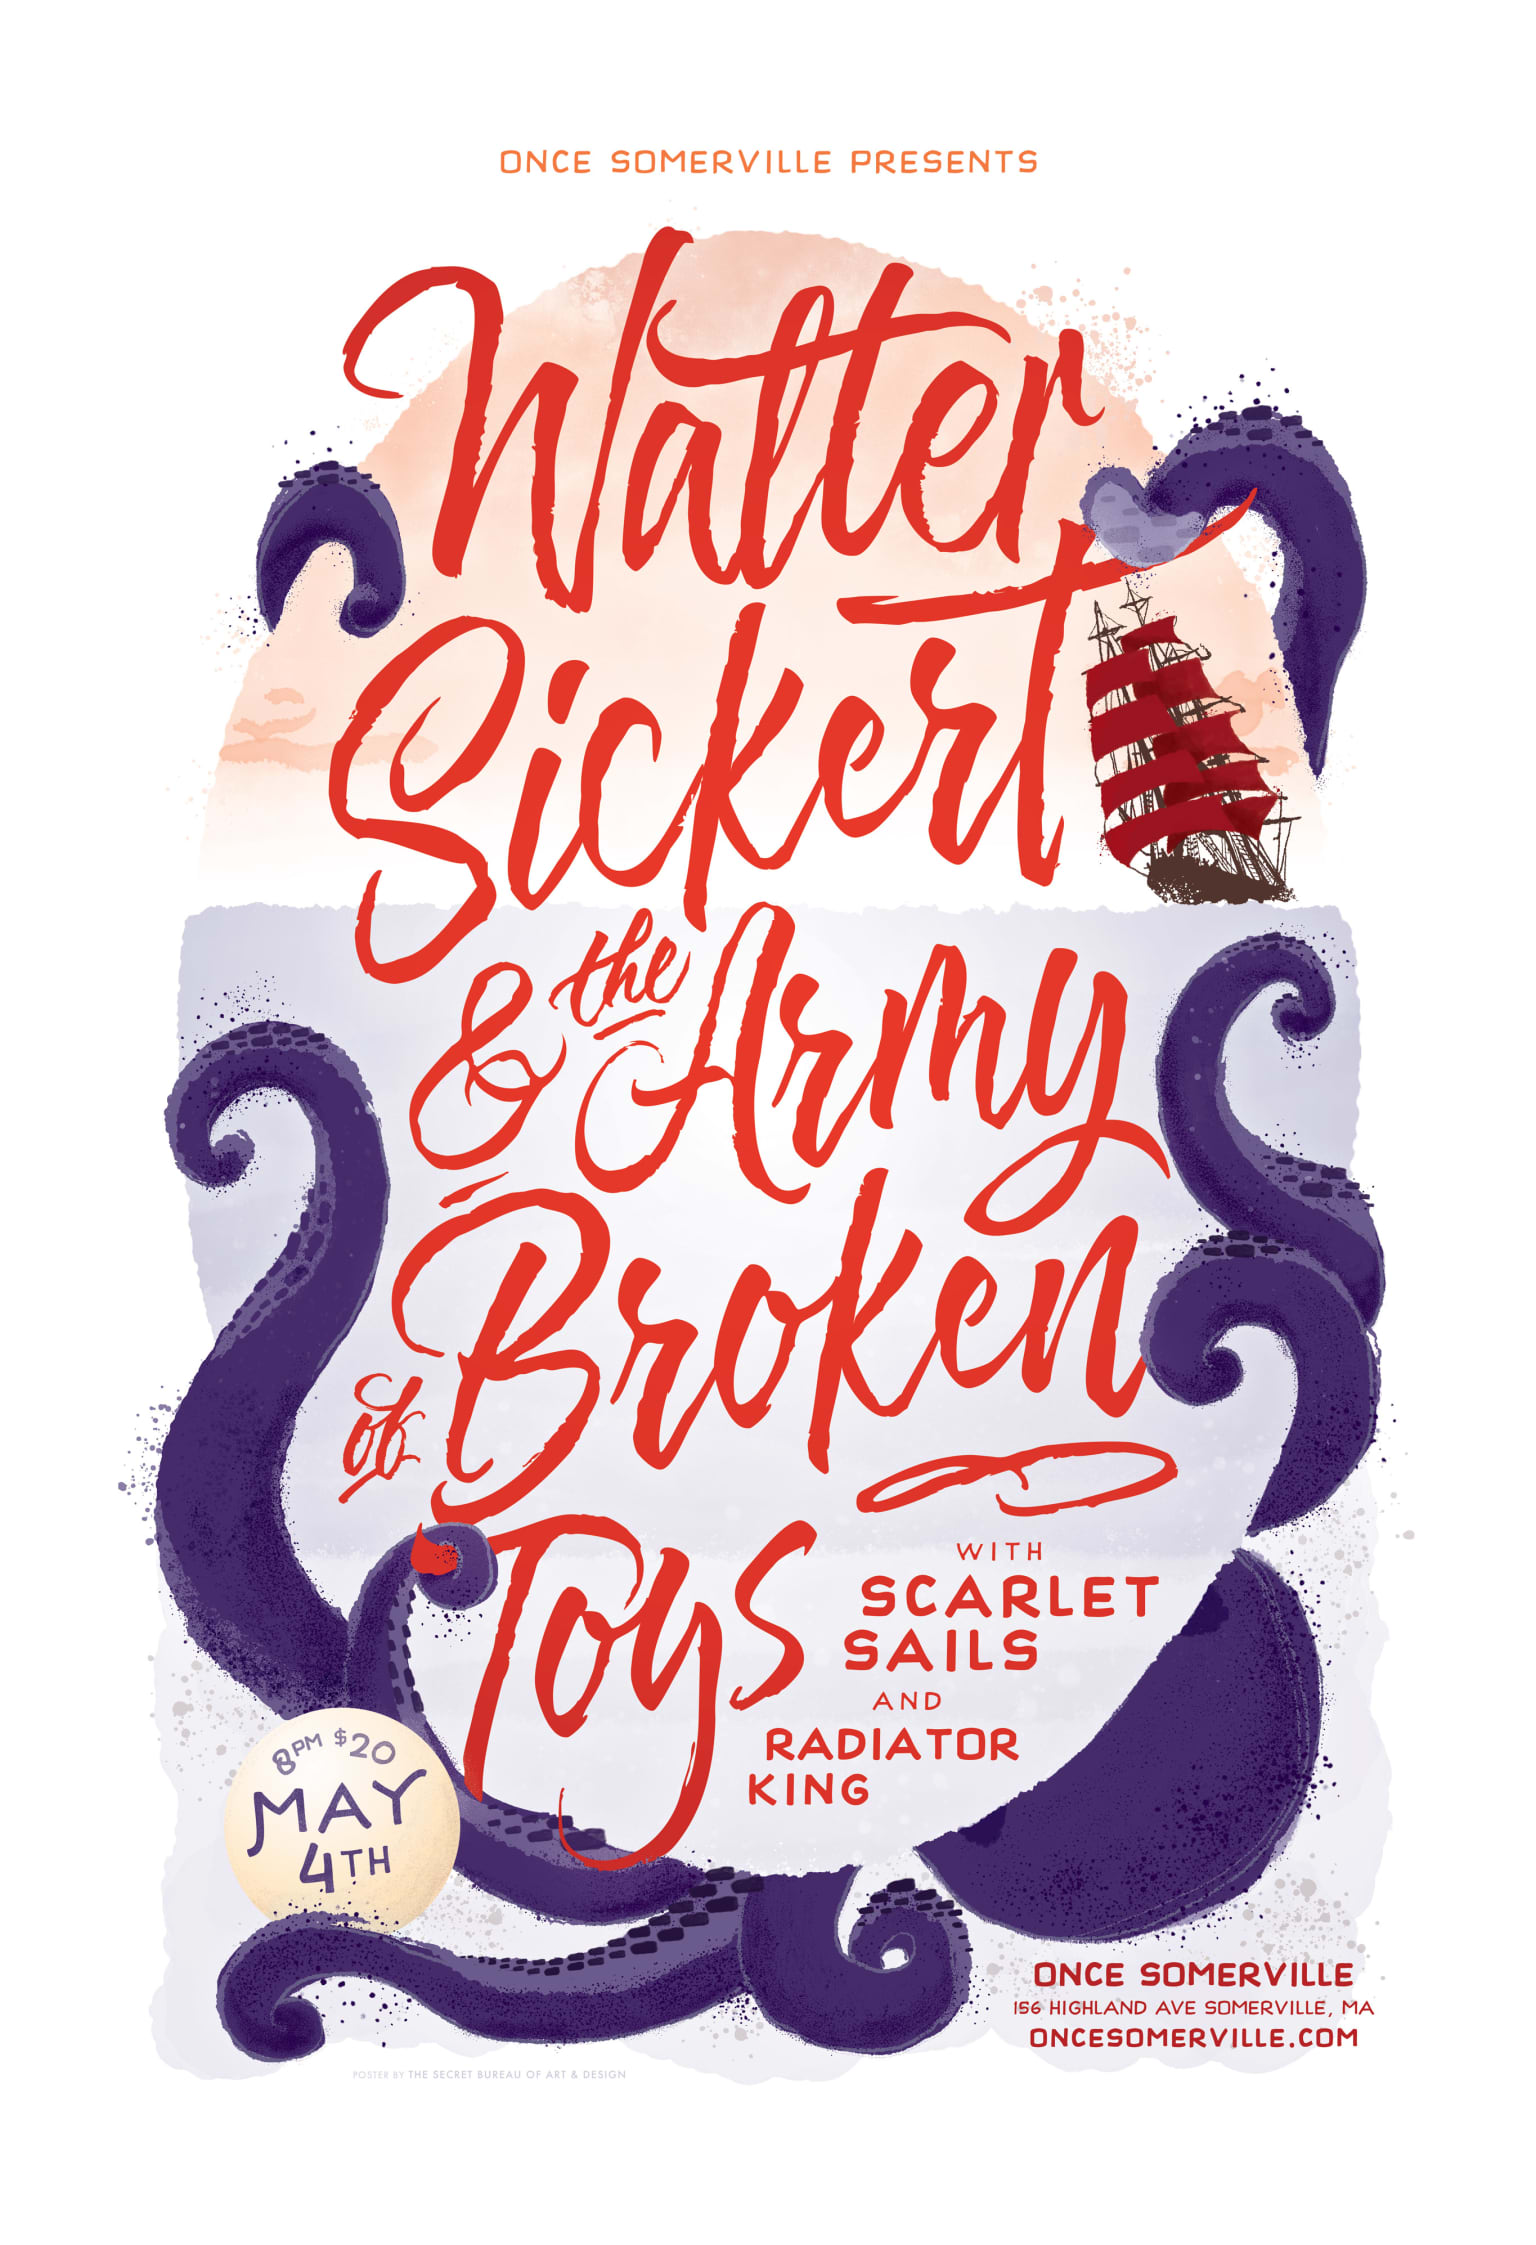 Poster for Walter Sickert & The Army of Broken Toys